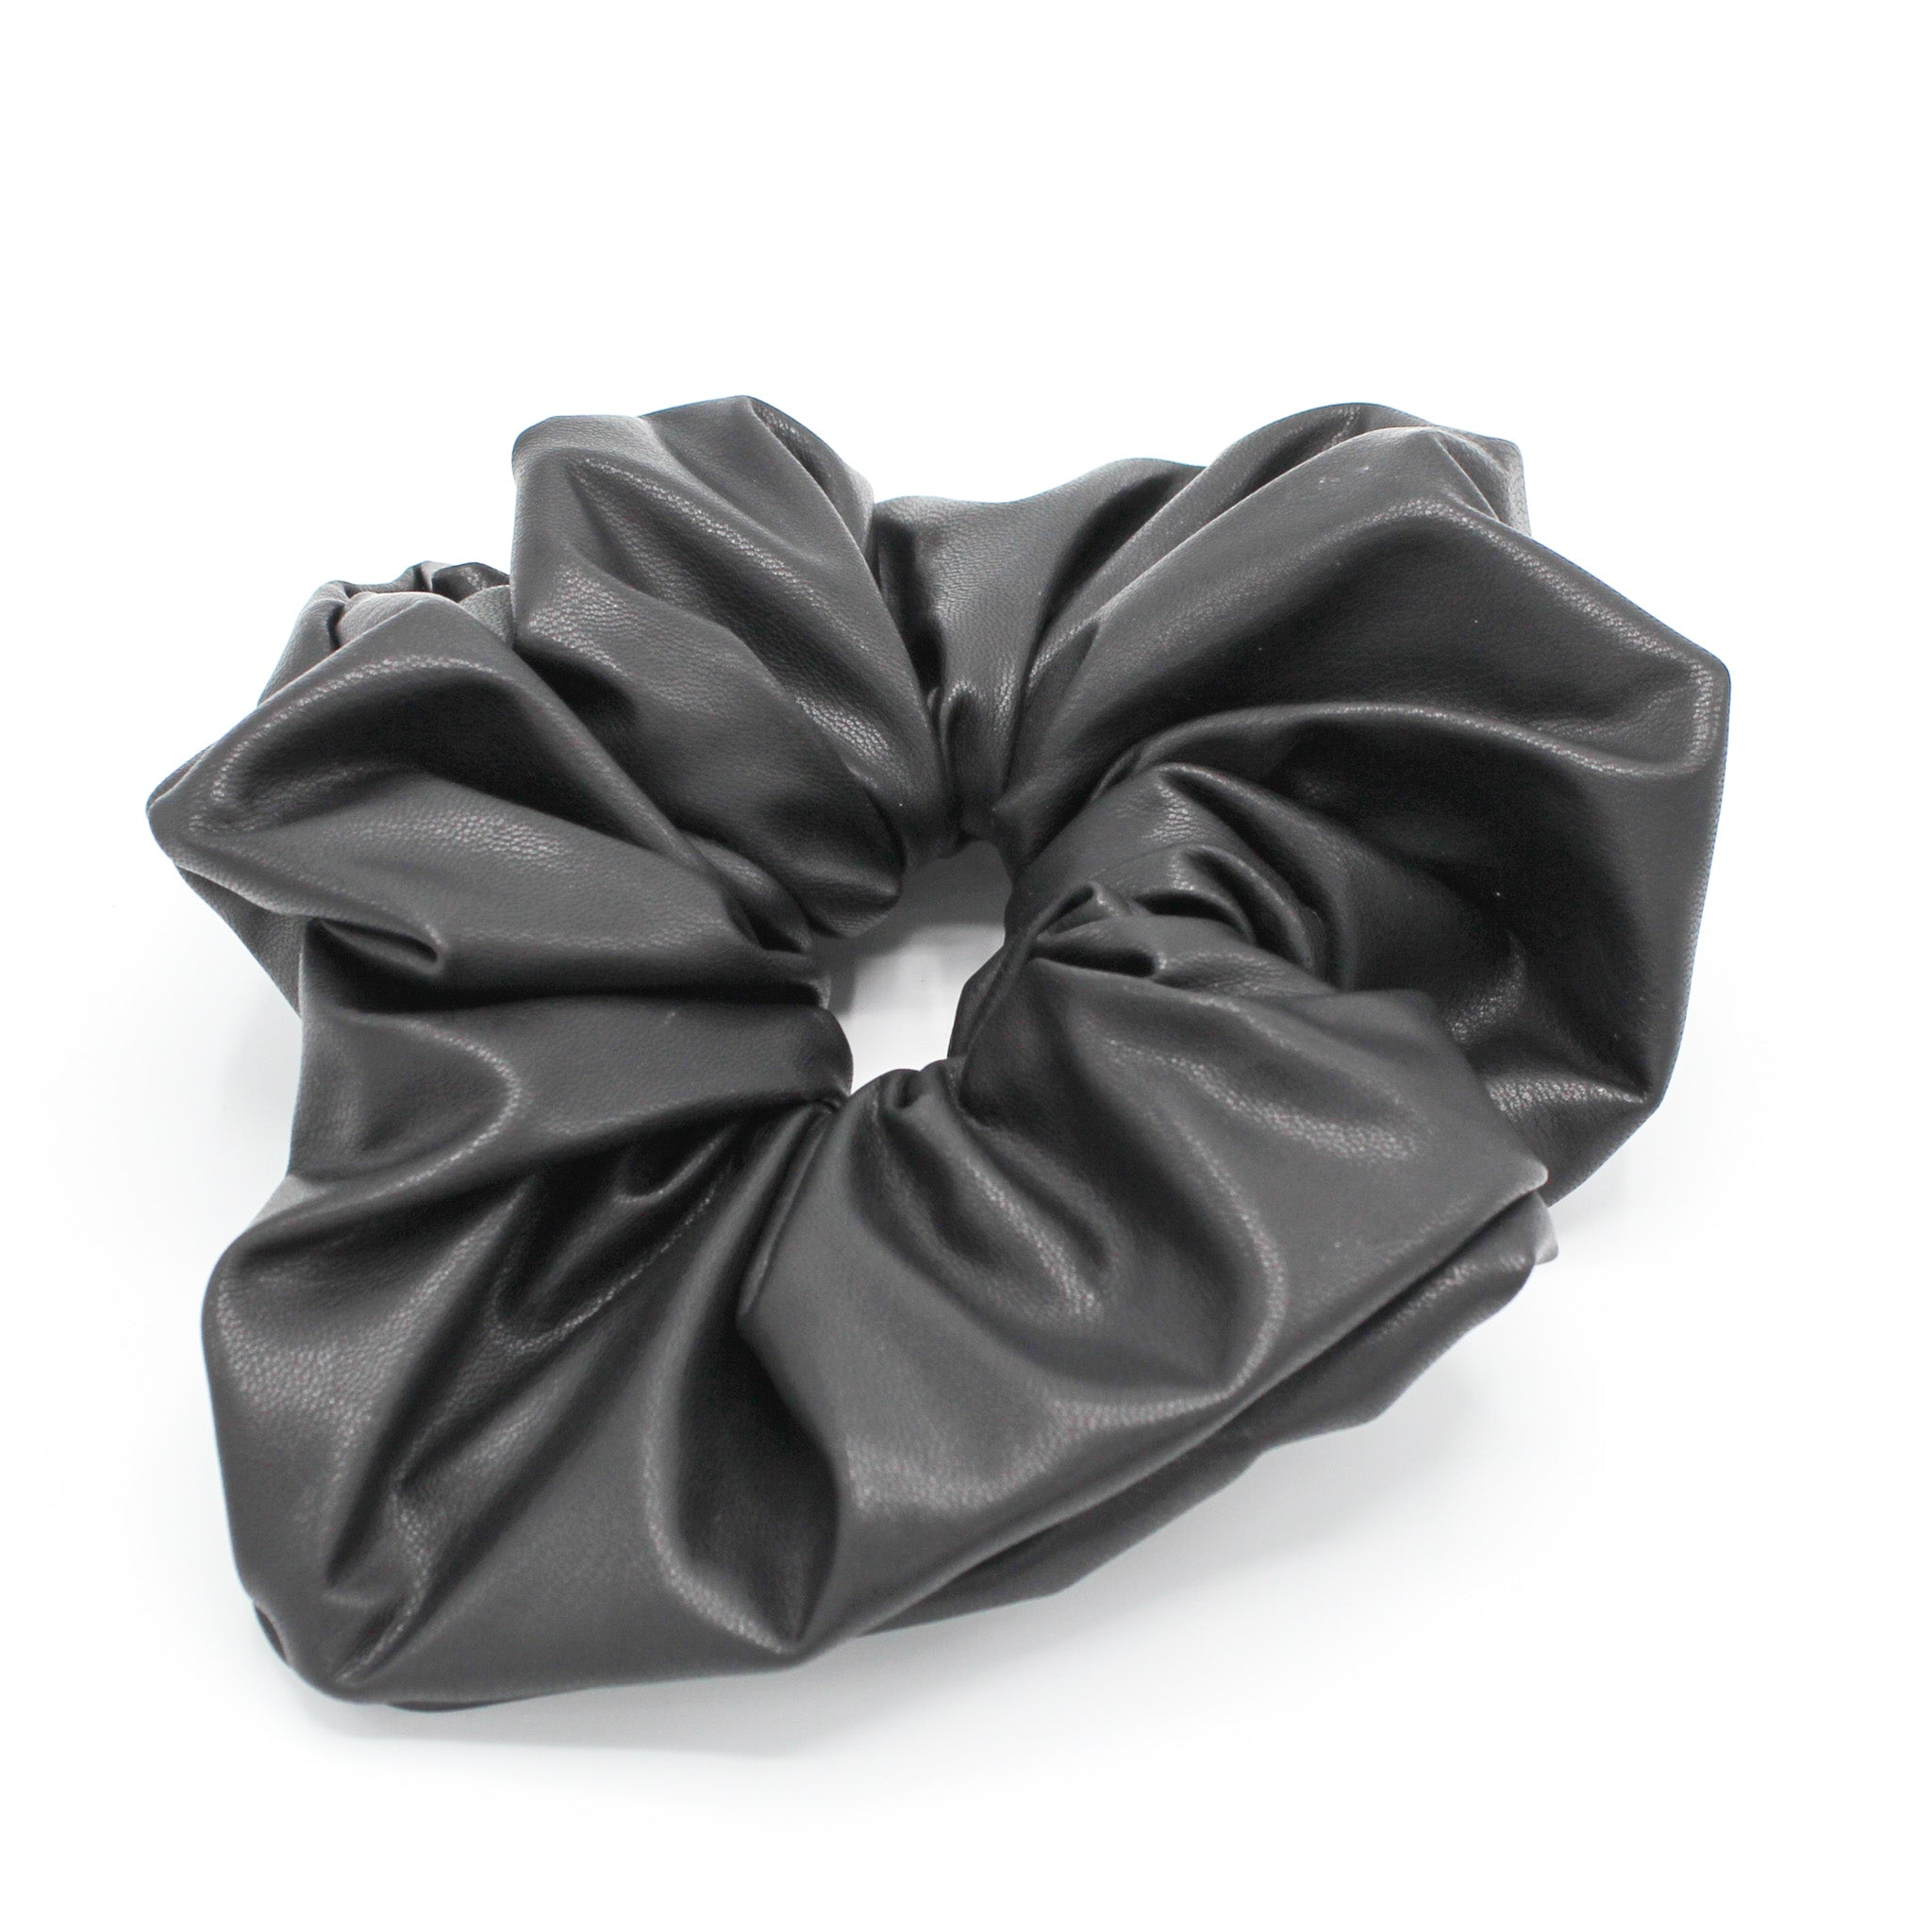 Oversized Black Faux Leather Scrunchie